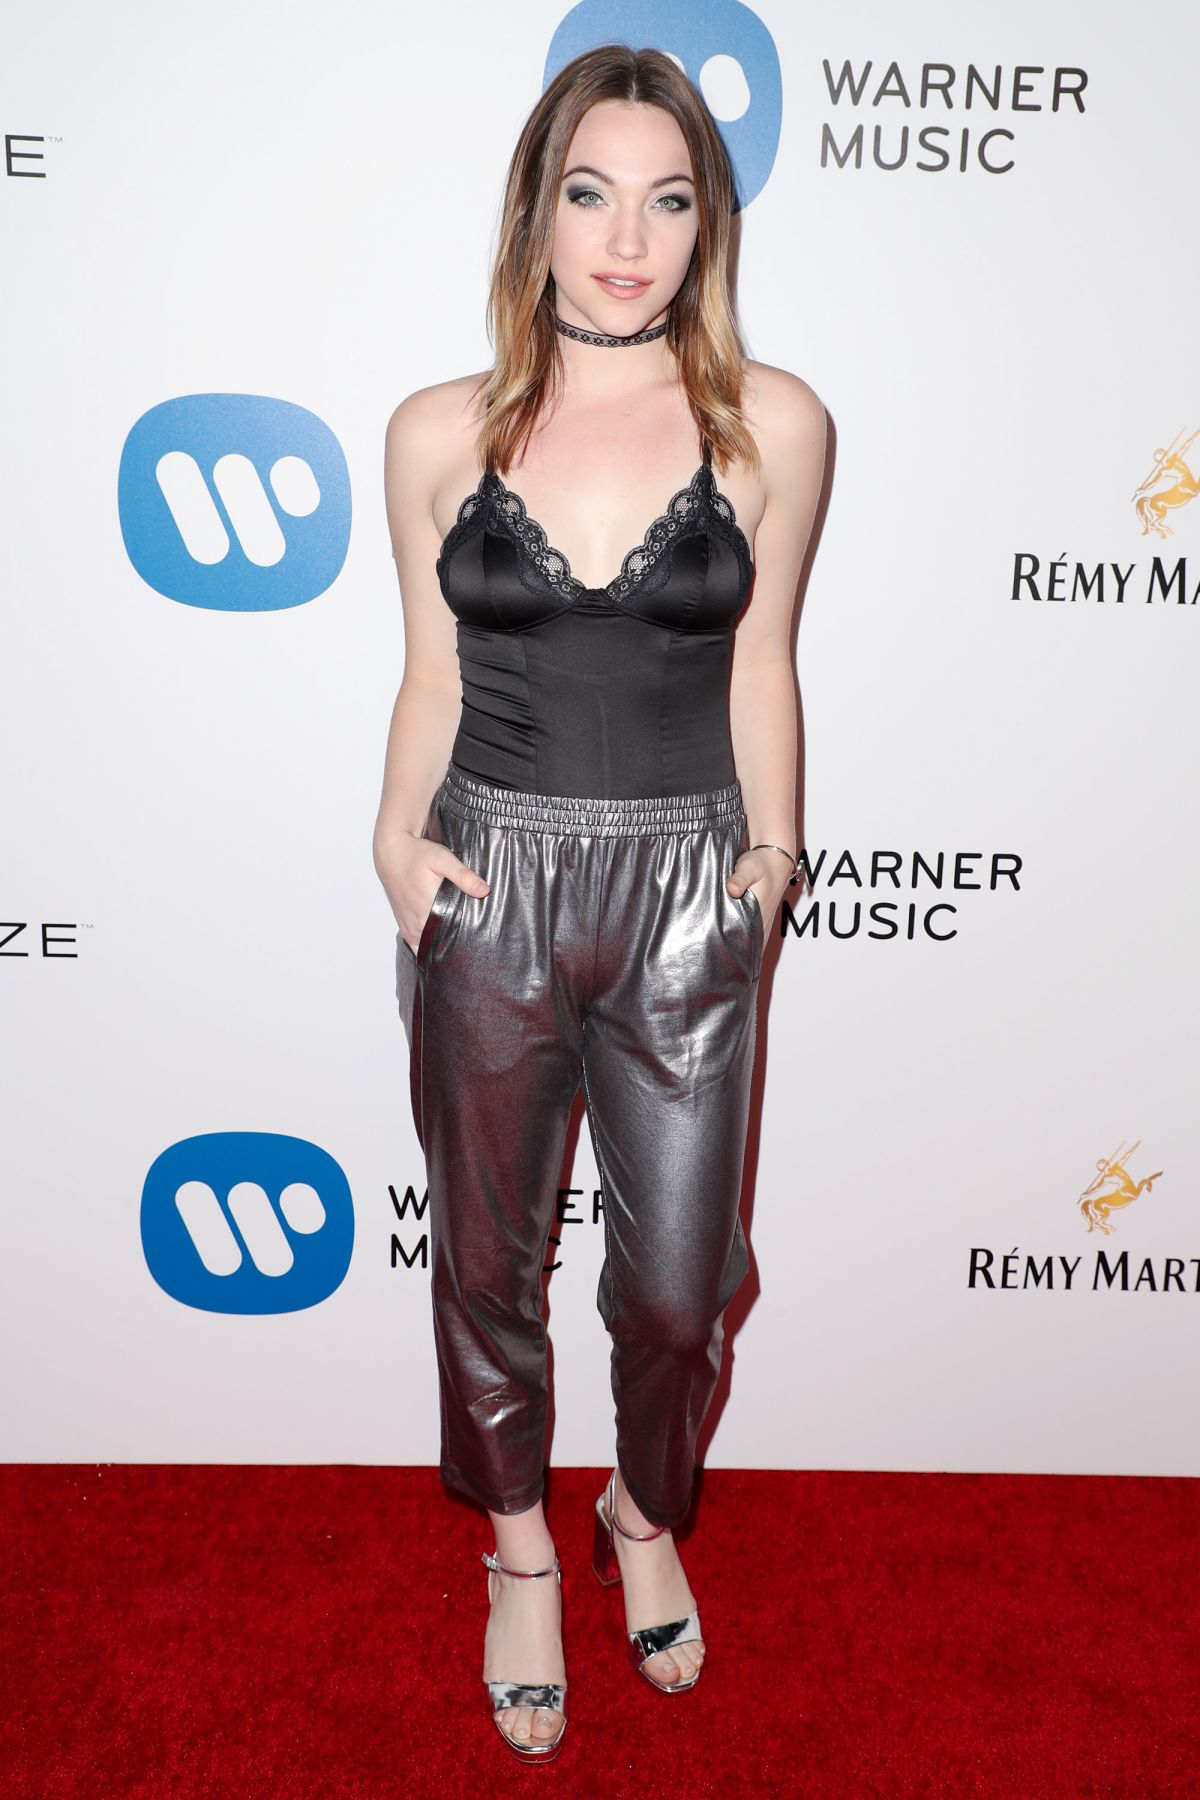 VIOLETT BEANE at Warner Music Group Grammy After Party in Los Angeles 02/12/2017